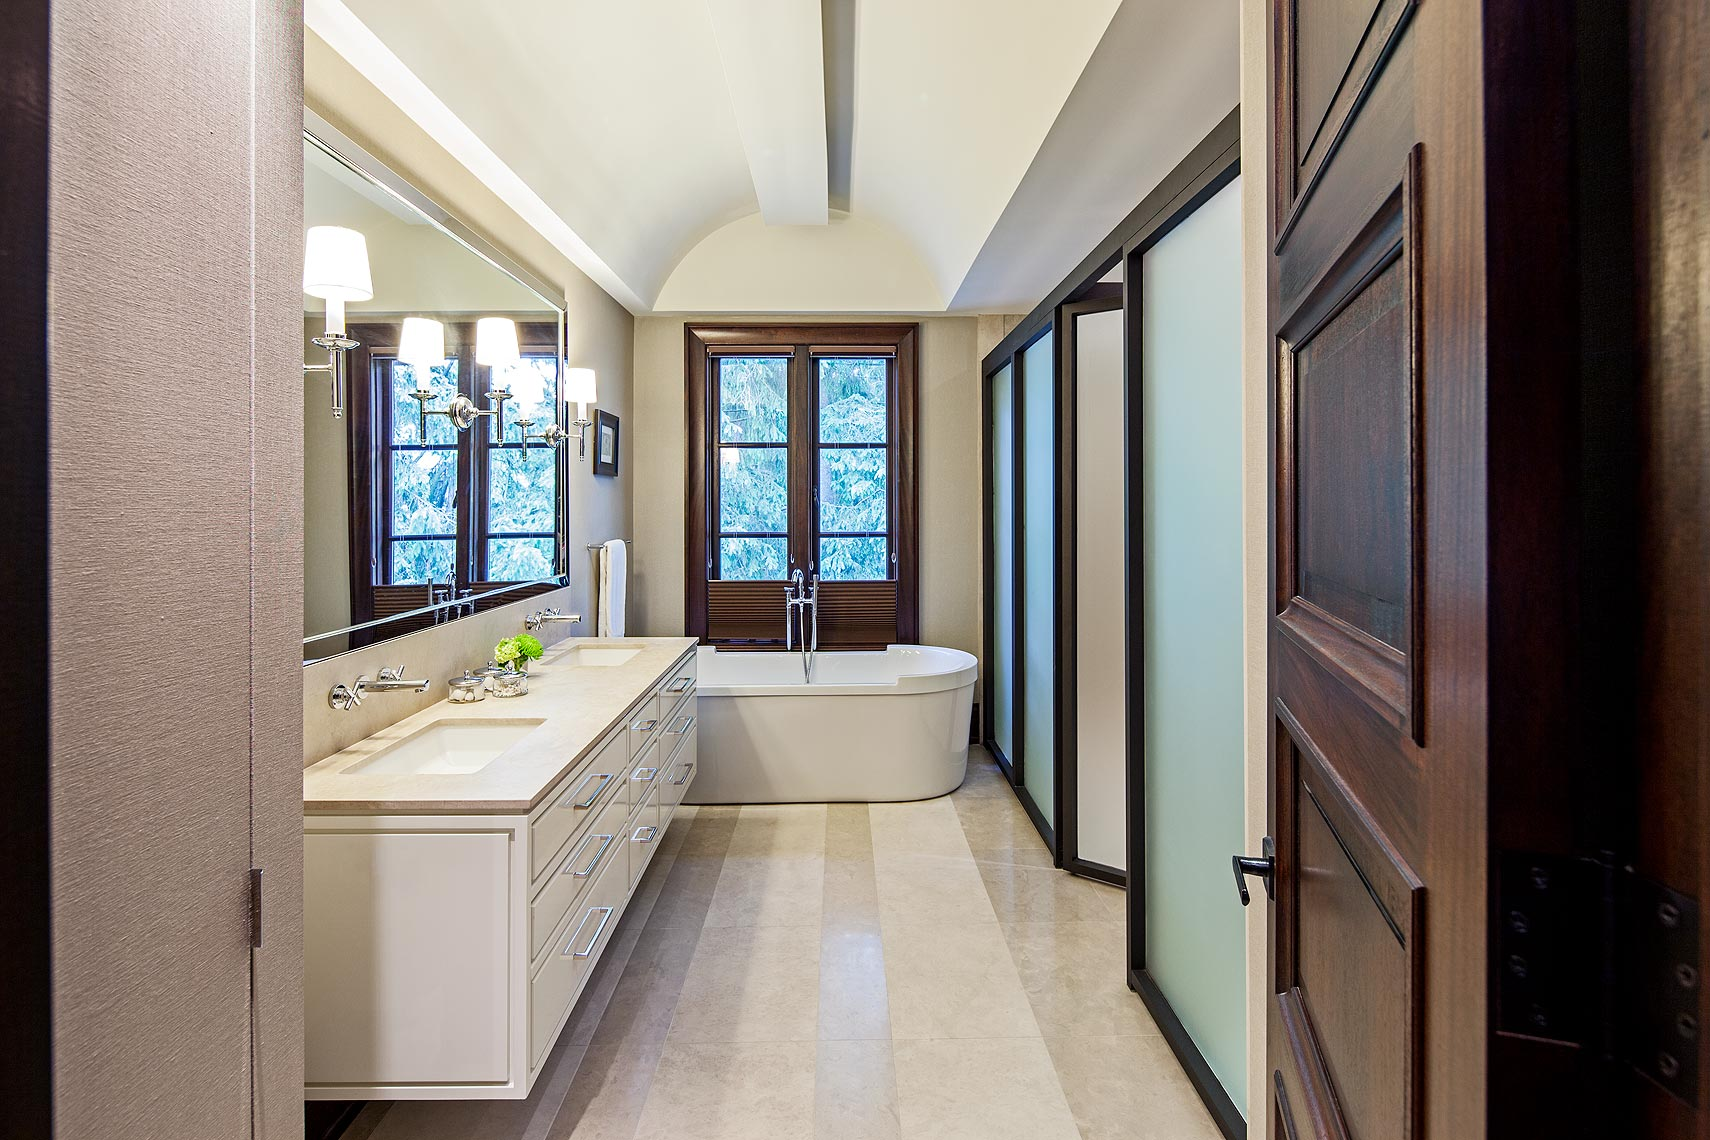 The barrel vaulted ceiling with recessed lighting emphasizes the serene and orderly nature of this peaceful retreat. Bronze-framed frosted glass partitions conceal the shower and toilet room. Top down/bottom up, bronze-toned fabric blinds create privacy while preserving the view of the lush landscape surrounding this river valley home. Grasscloth covering the foreground storage cabinet adds an unexpected textural element.